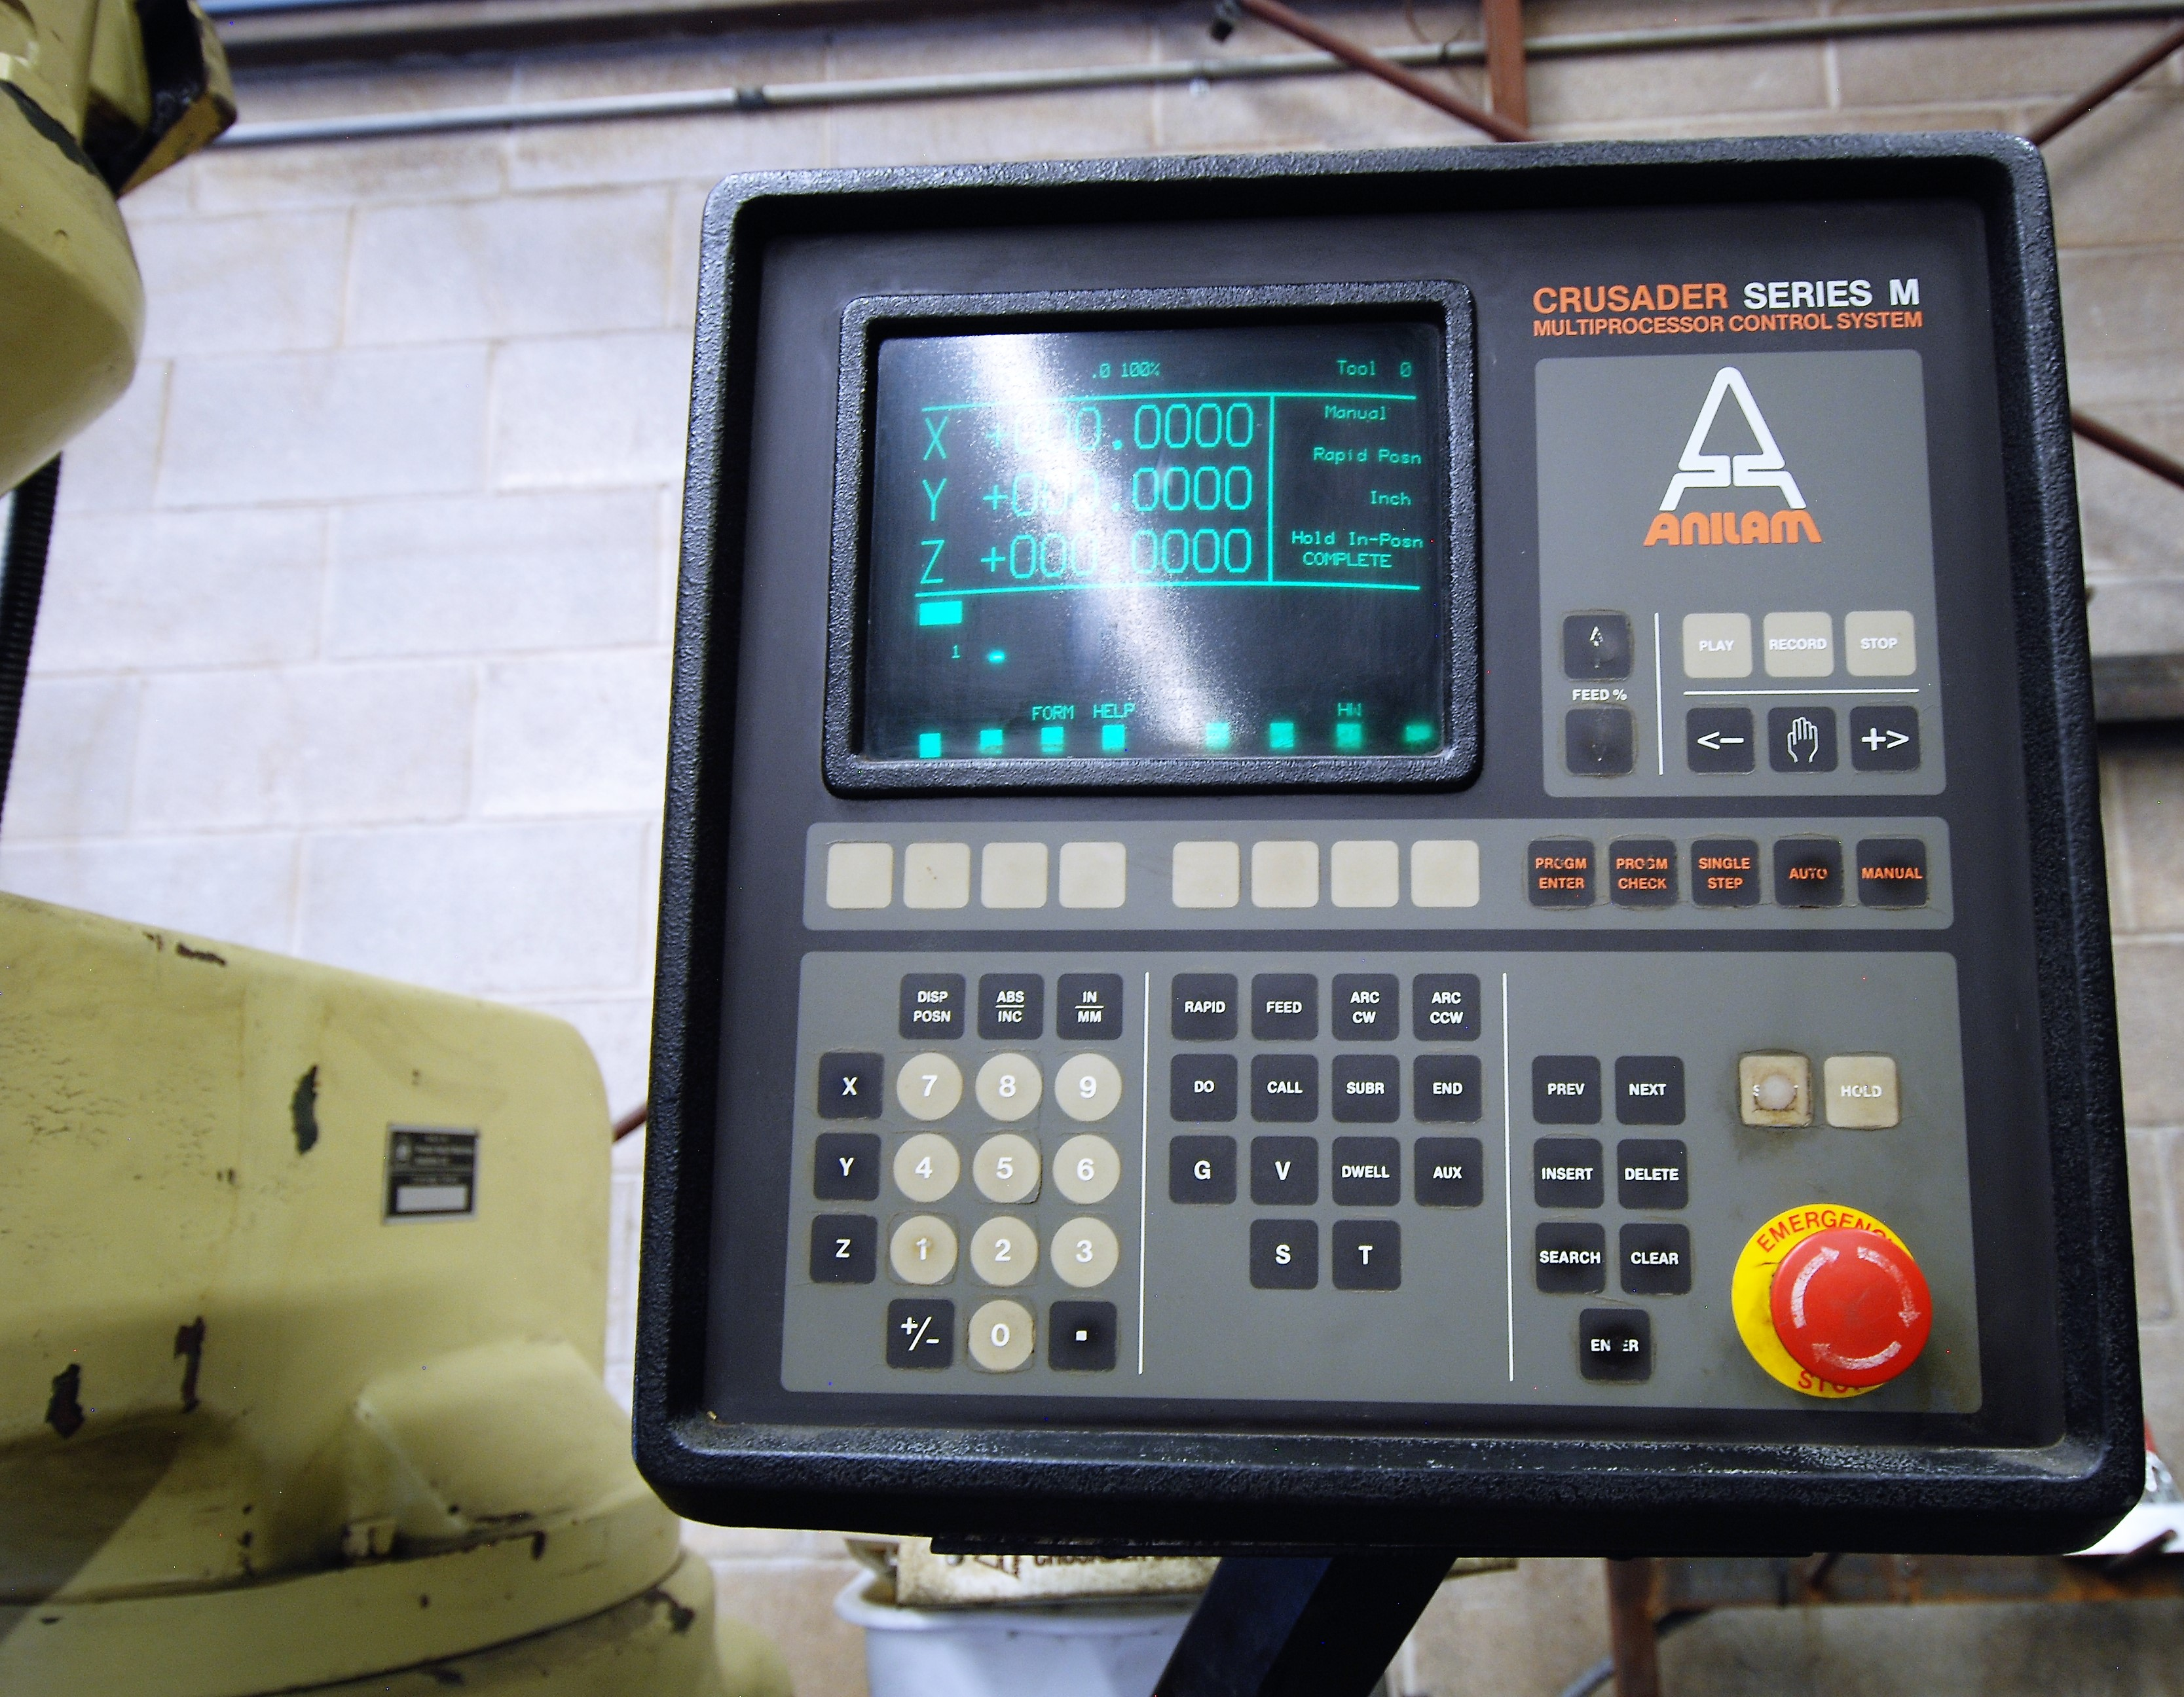 """DELTACNC VERTICAL MILLING MACHINE, ANILAM CRUSADER SERIES M CNC CONTROL, 10"""" x 52"""" TABLE, 3,600 - Image 3 of 7"""